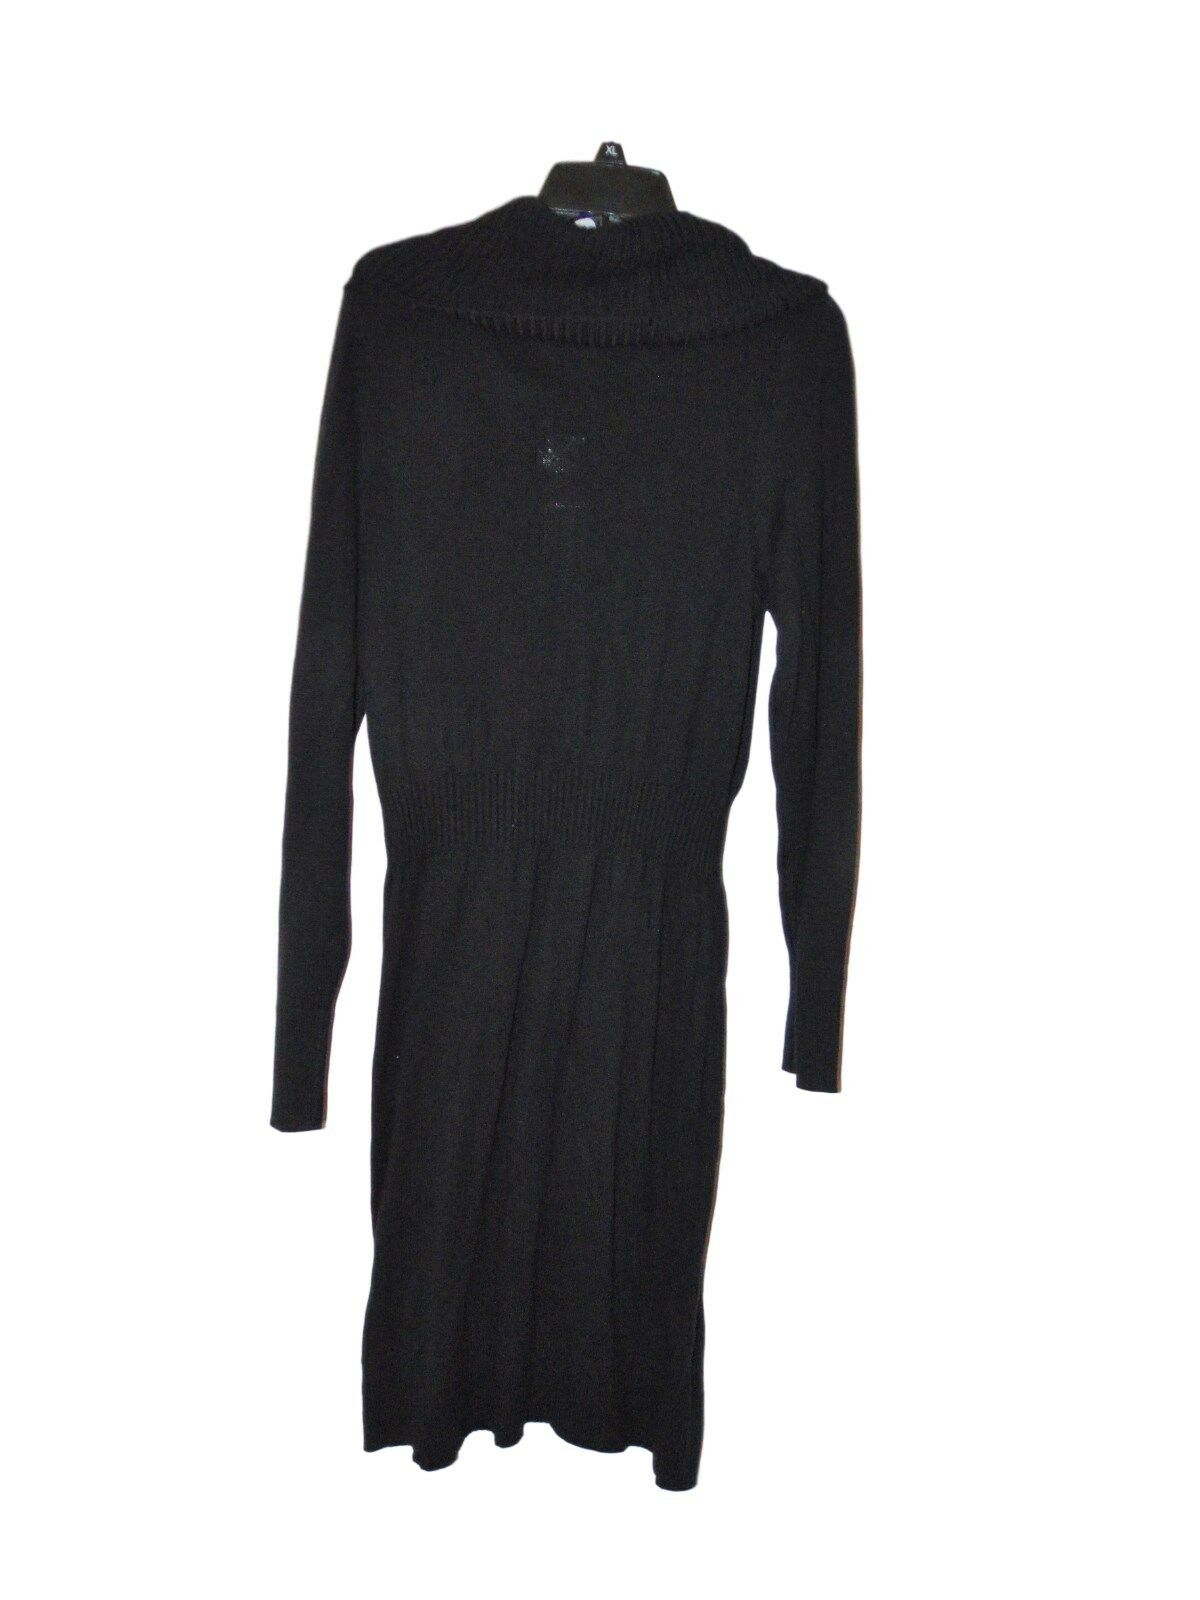 Apt. 9 Rib Waist Cowl Neck Sweater Dress Size 1x Black | eBay